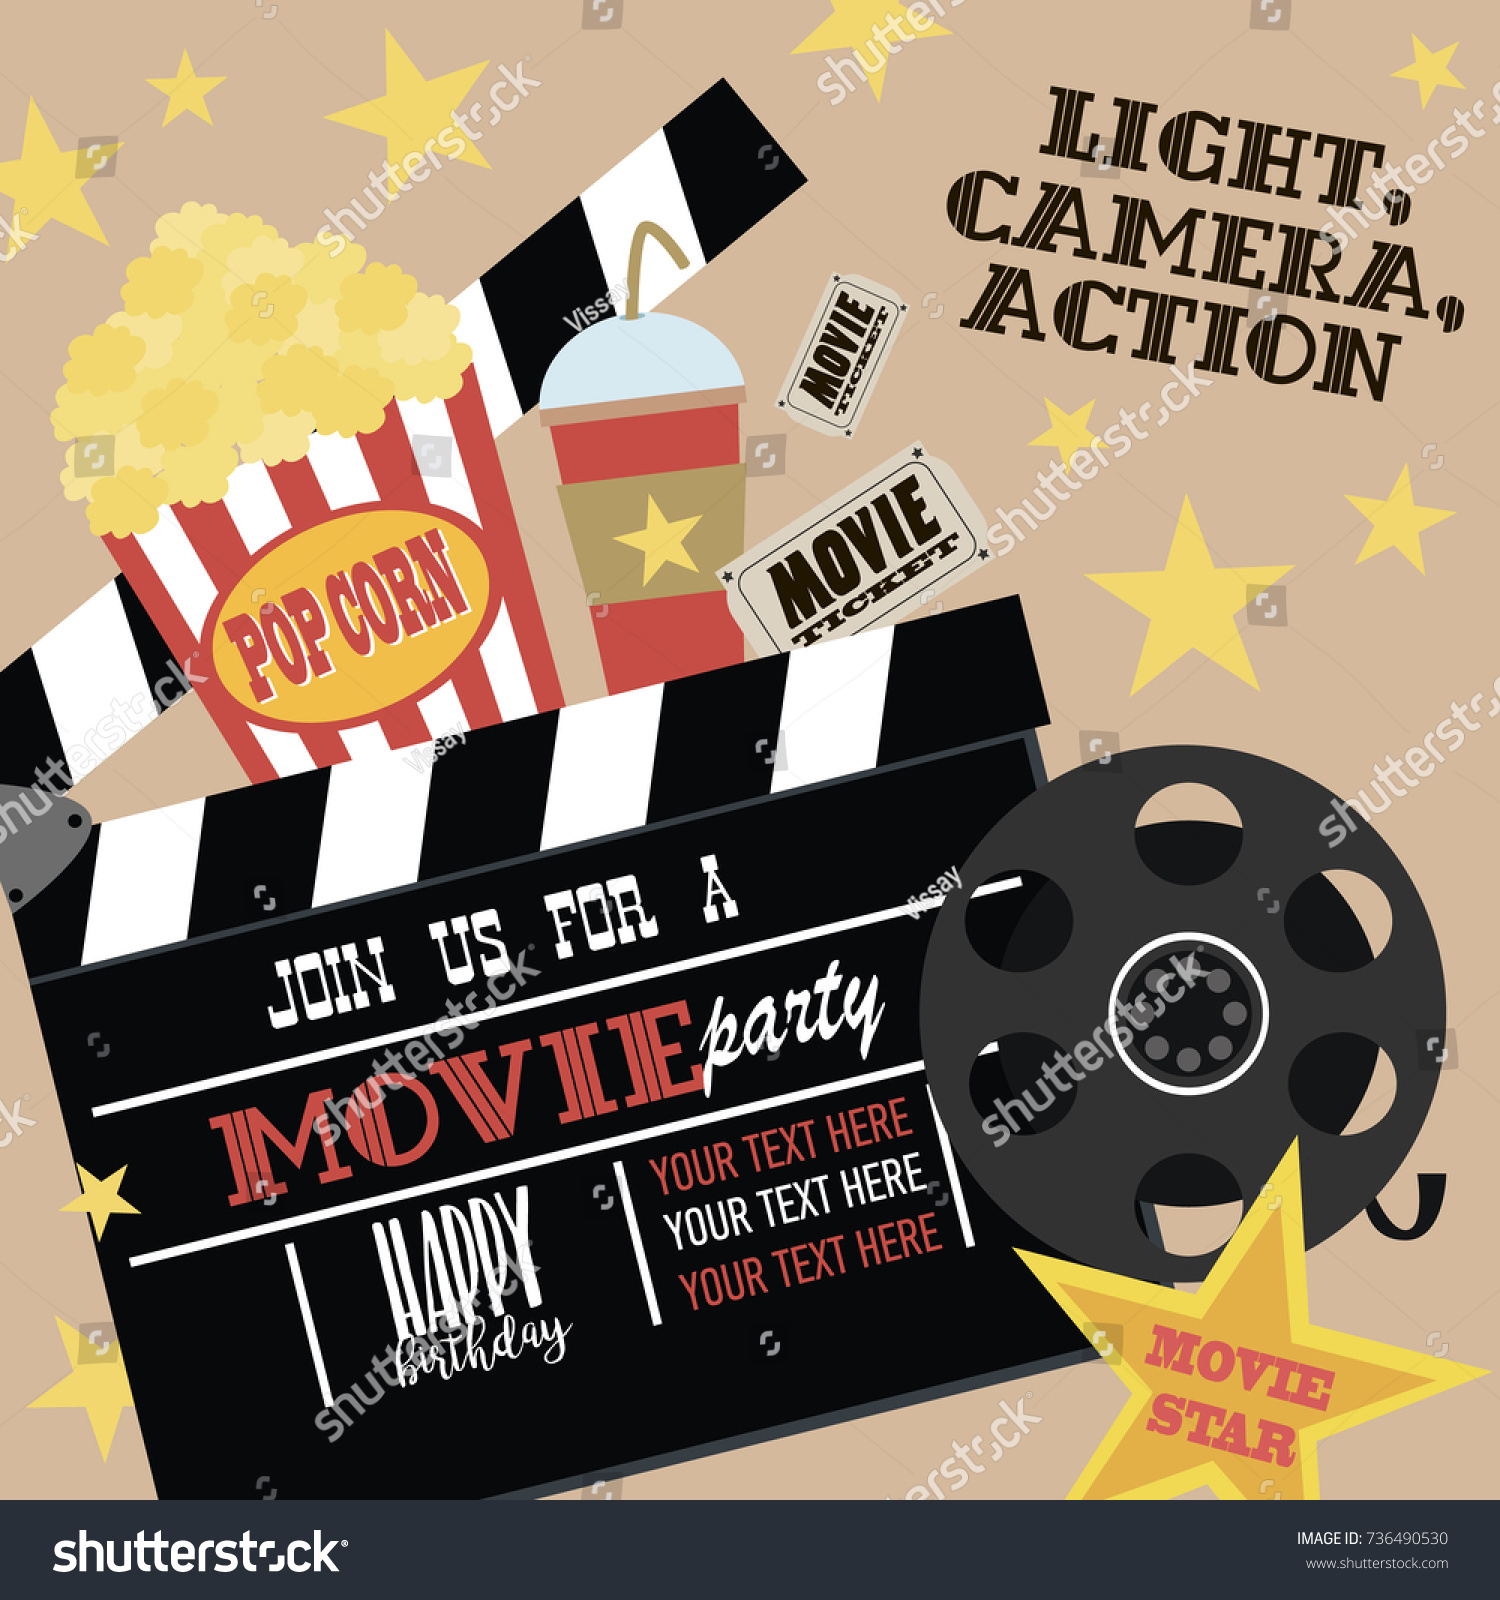 Hollywood Theme Party Invites Images - Party Invitations Ideas